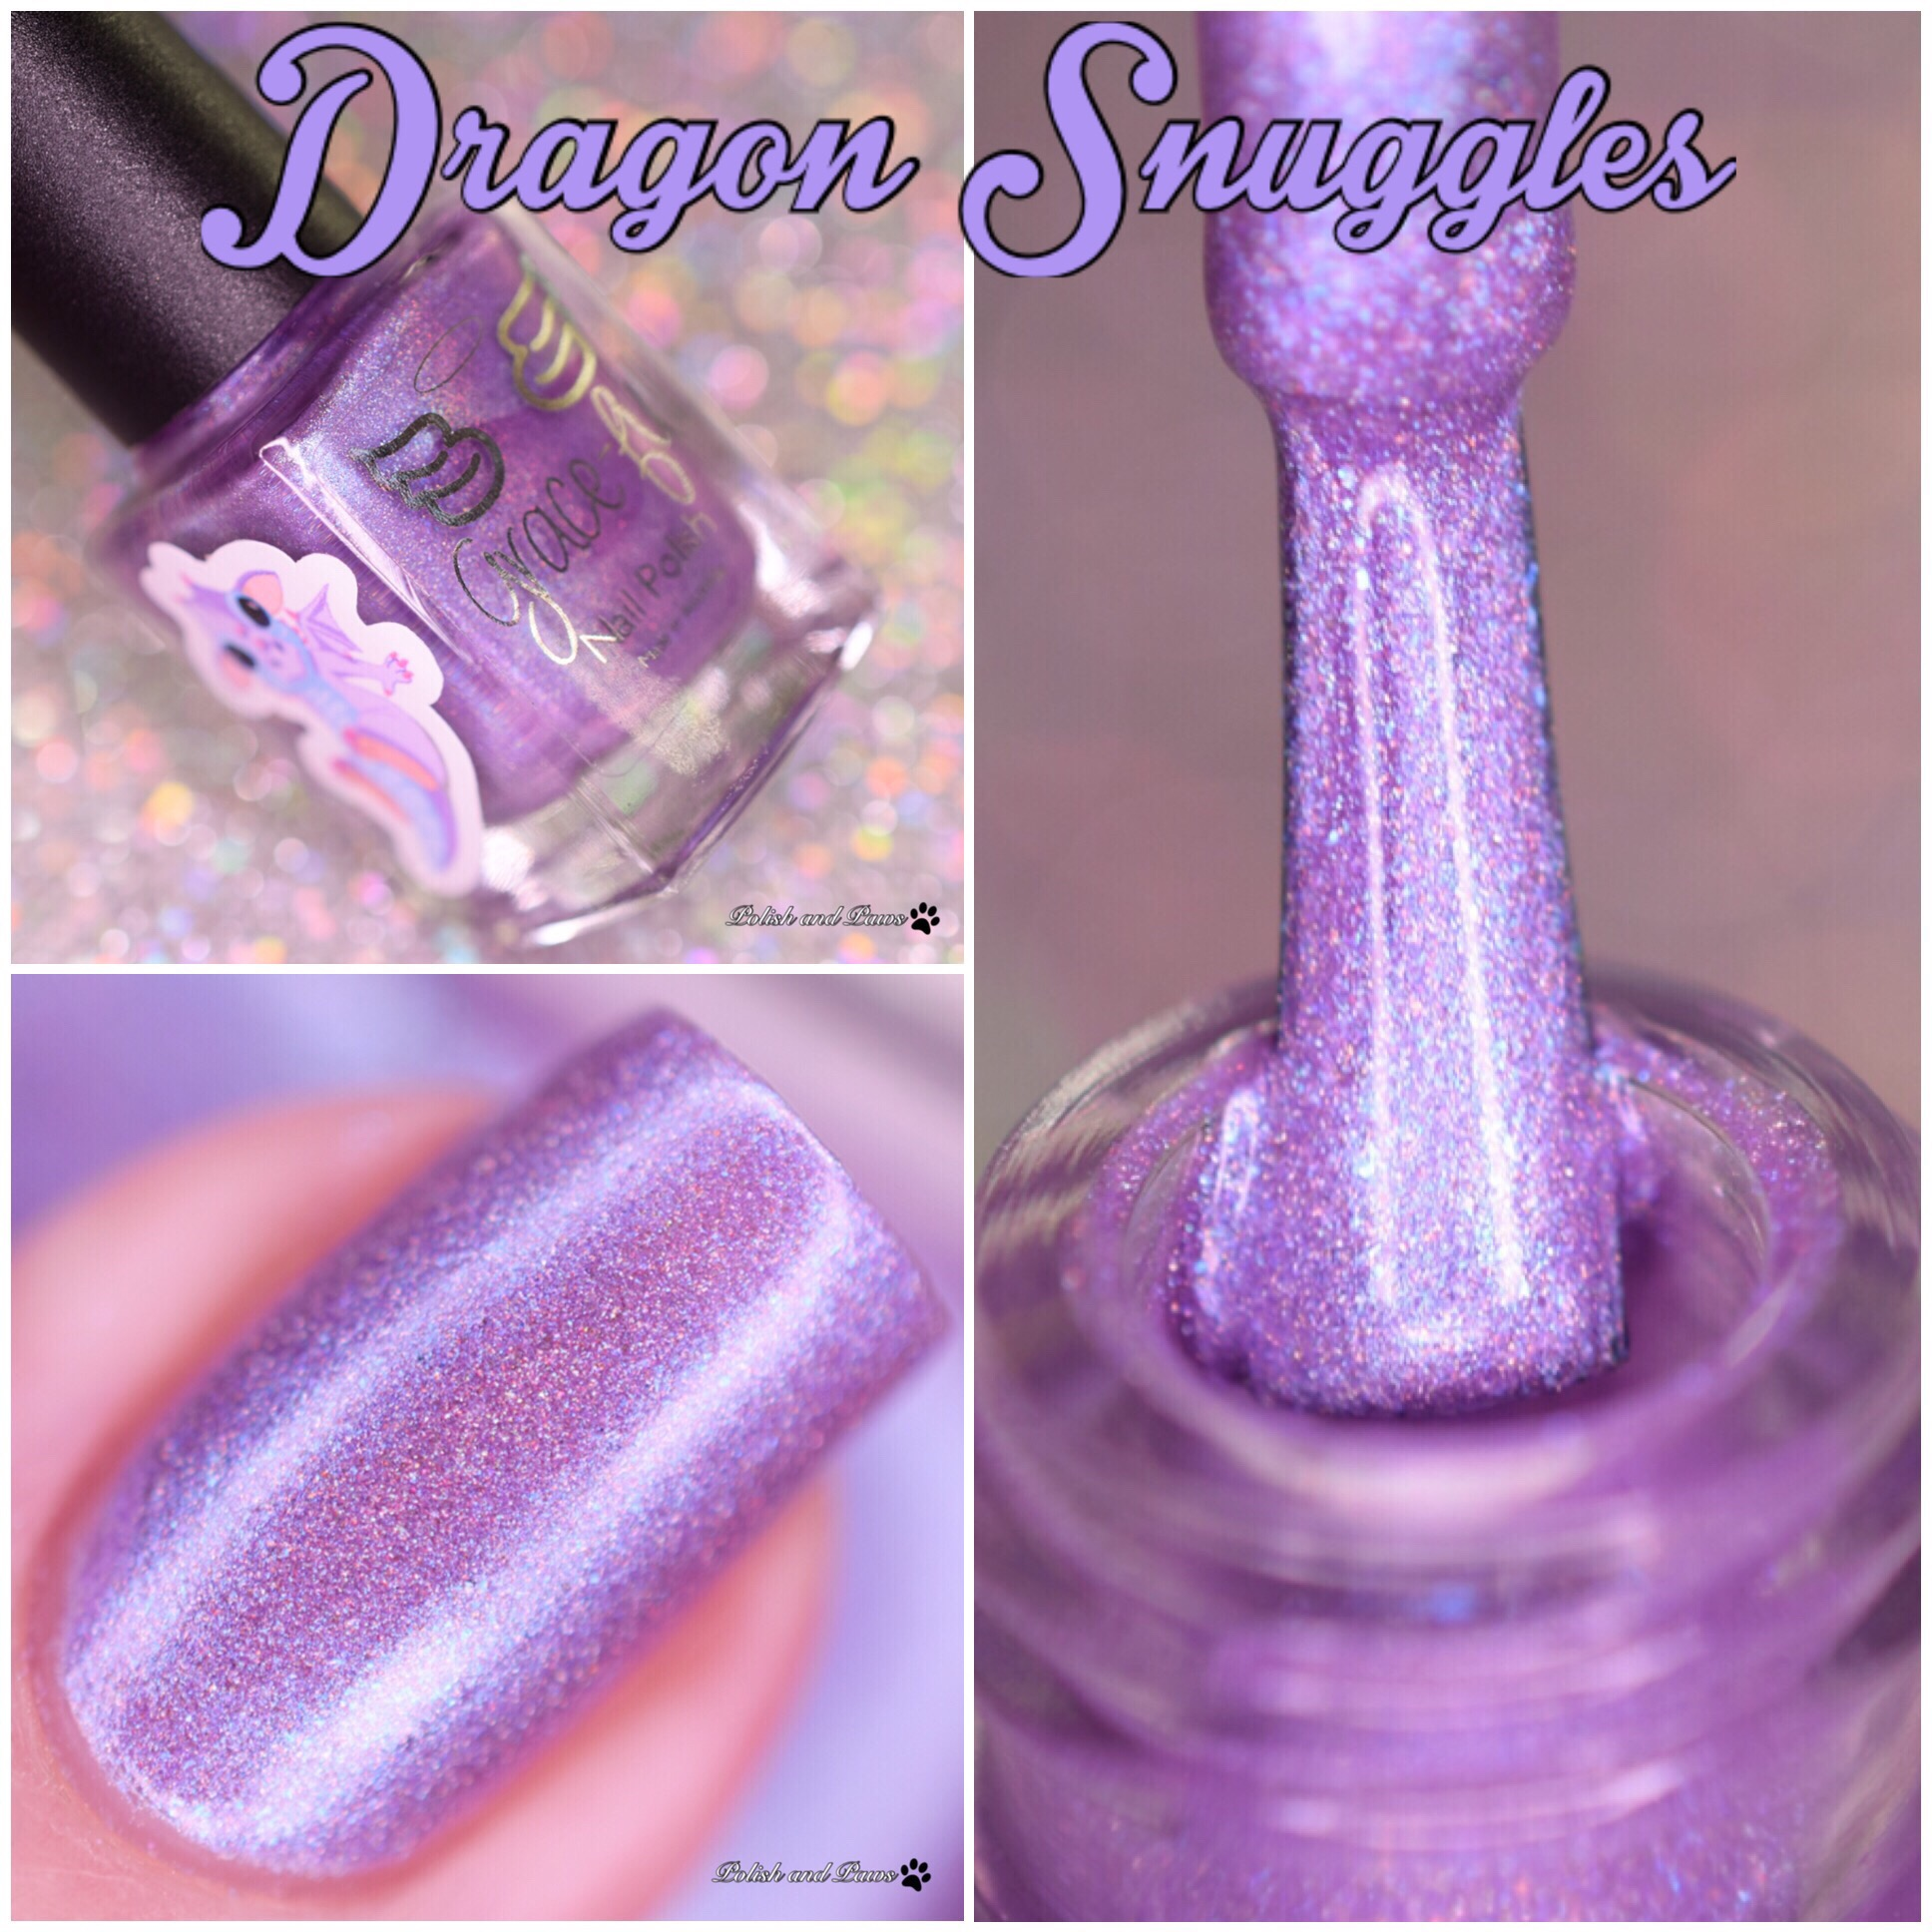 Grace-full Nail Polish Dragon Snuggles